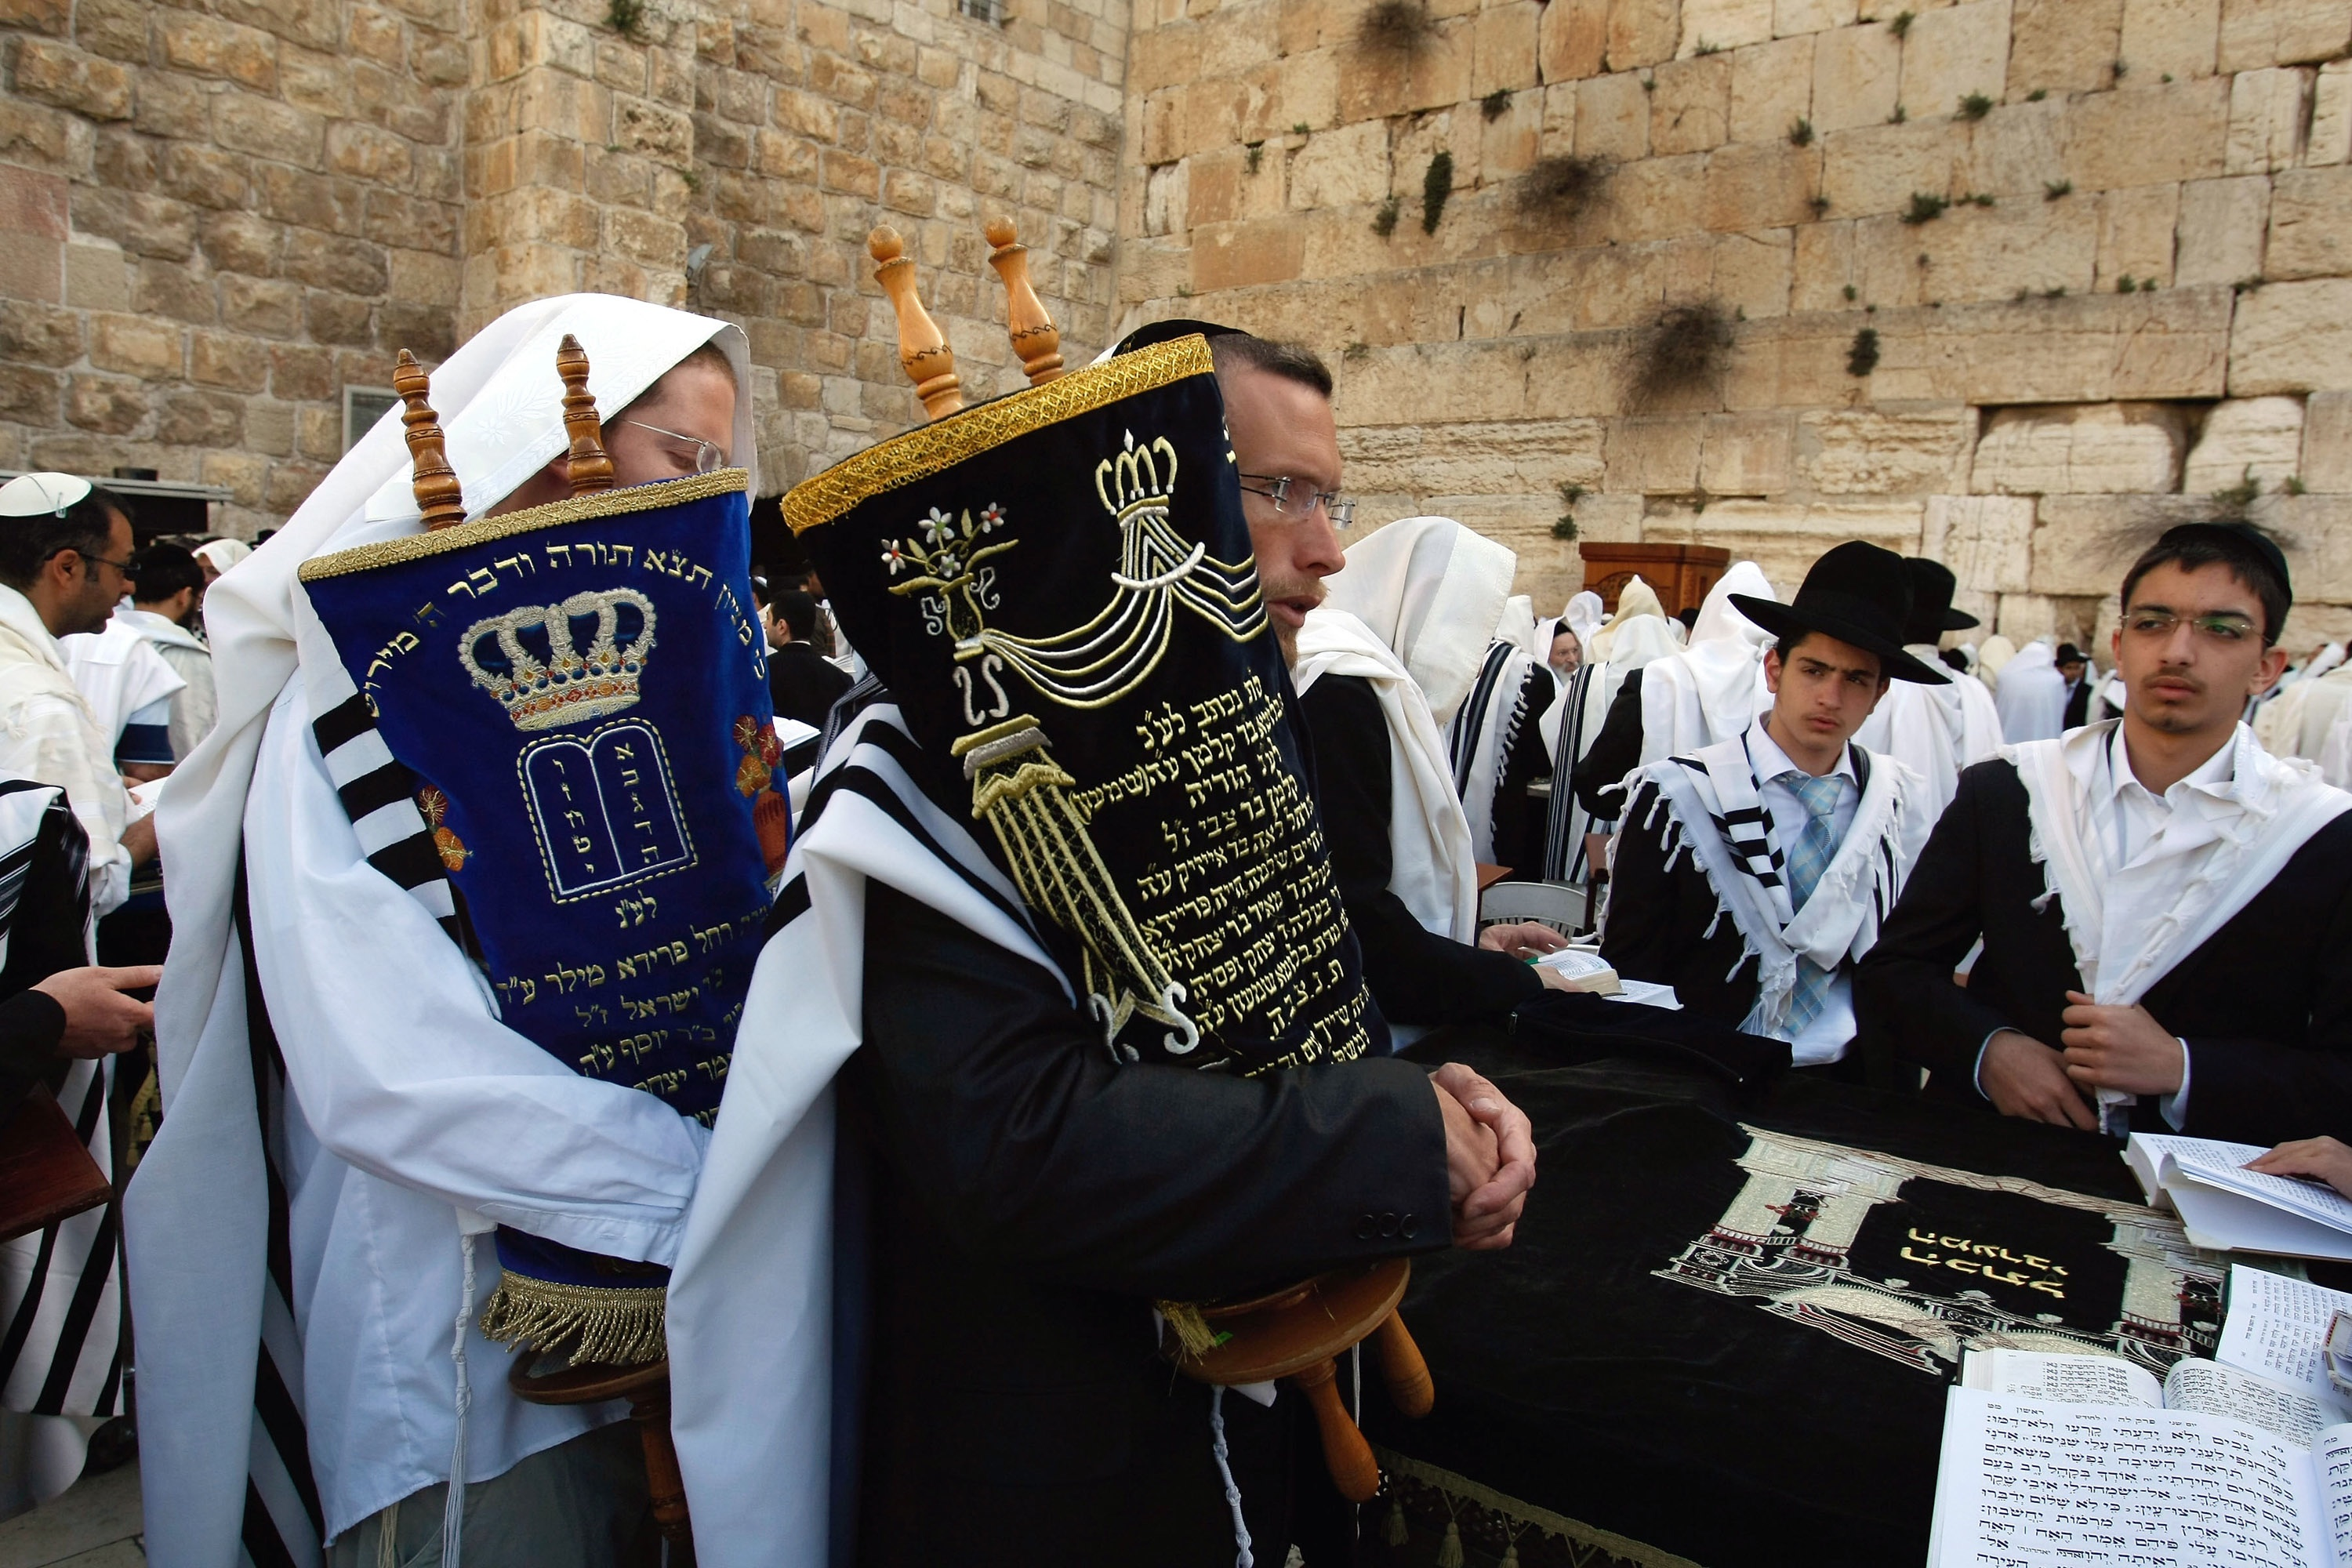 Western Wall Fills With Jewish Pilgrims